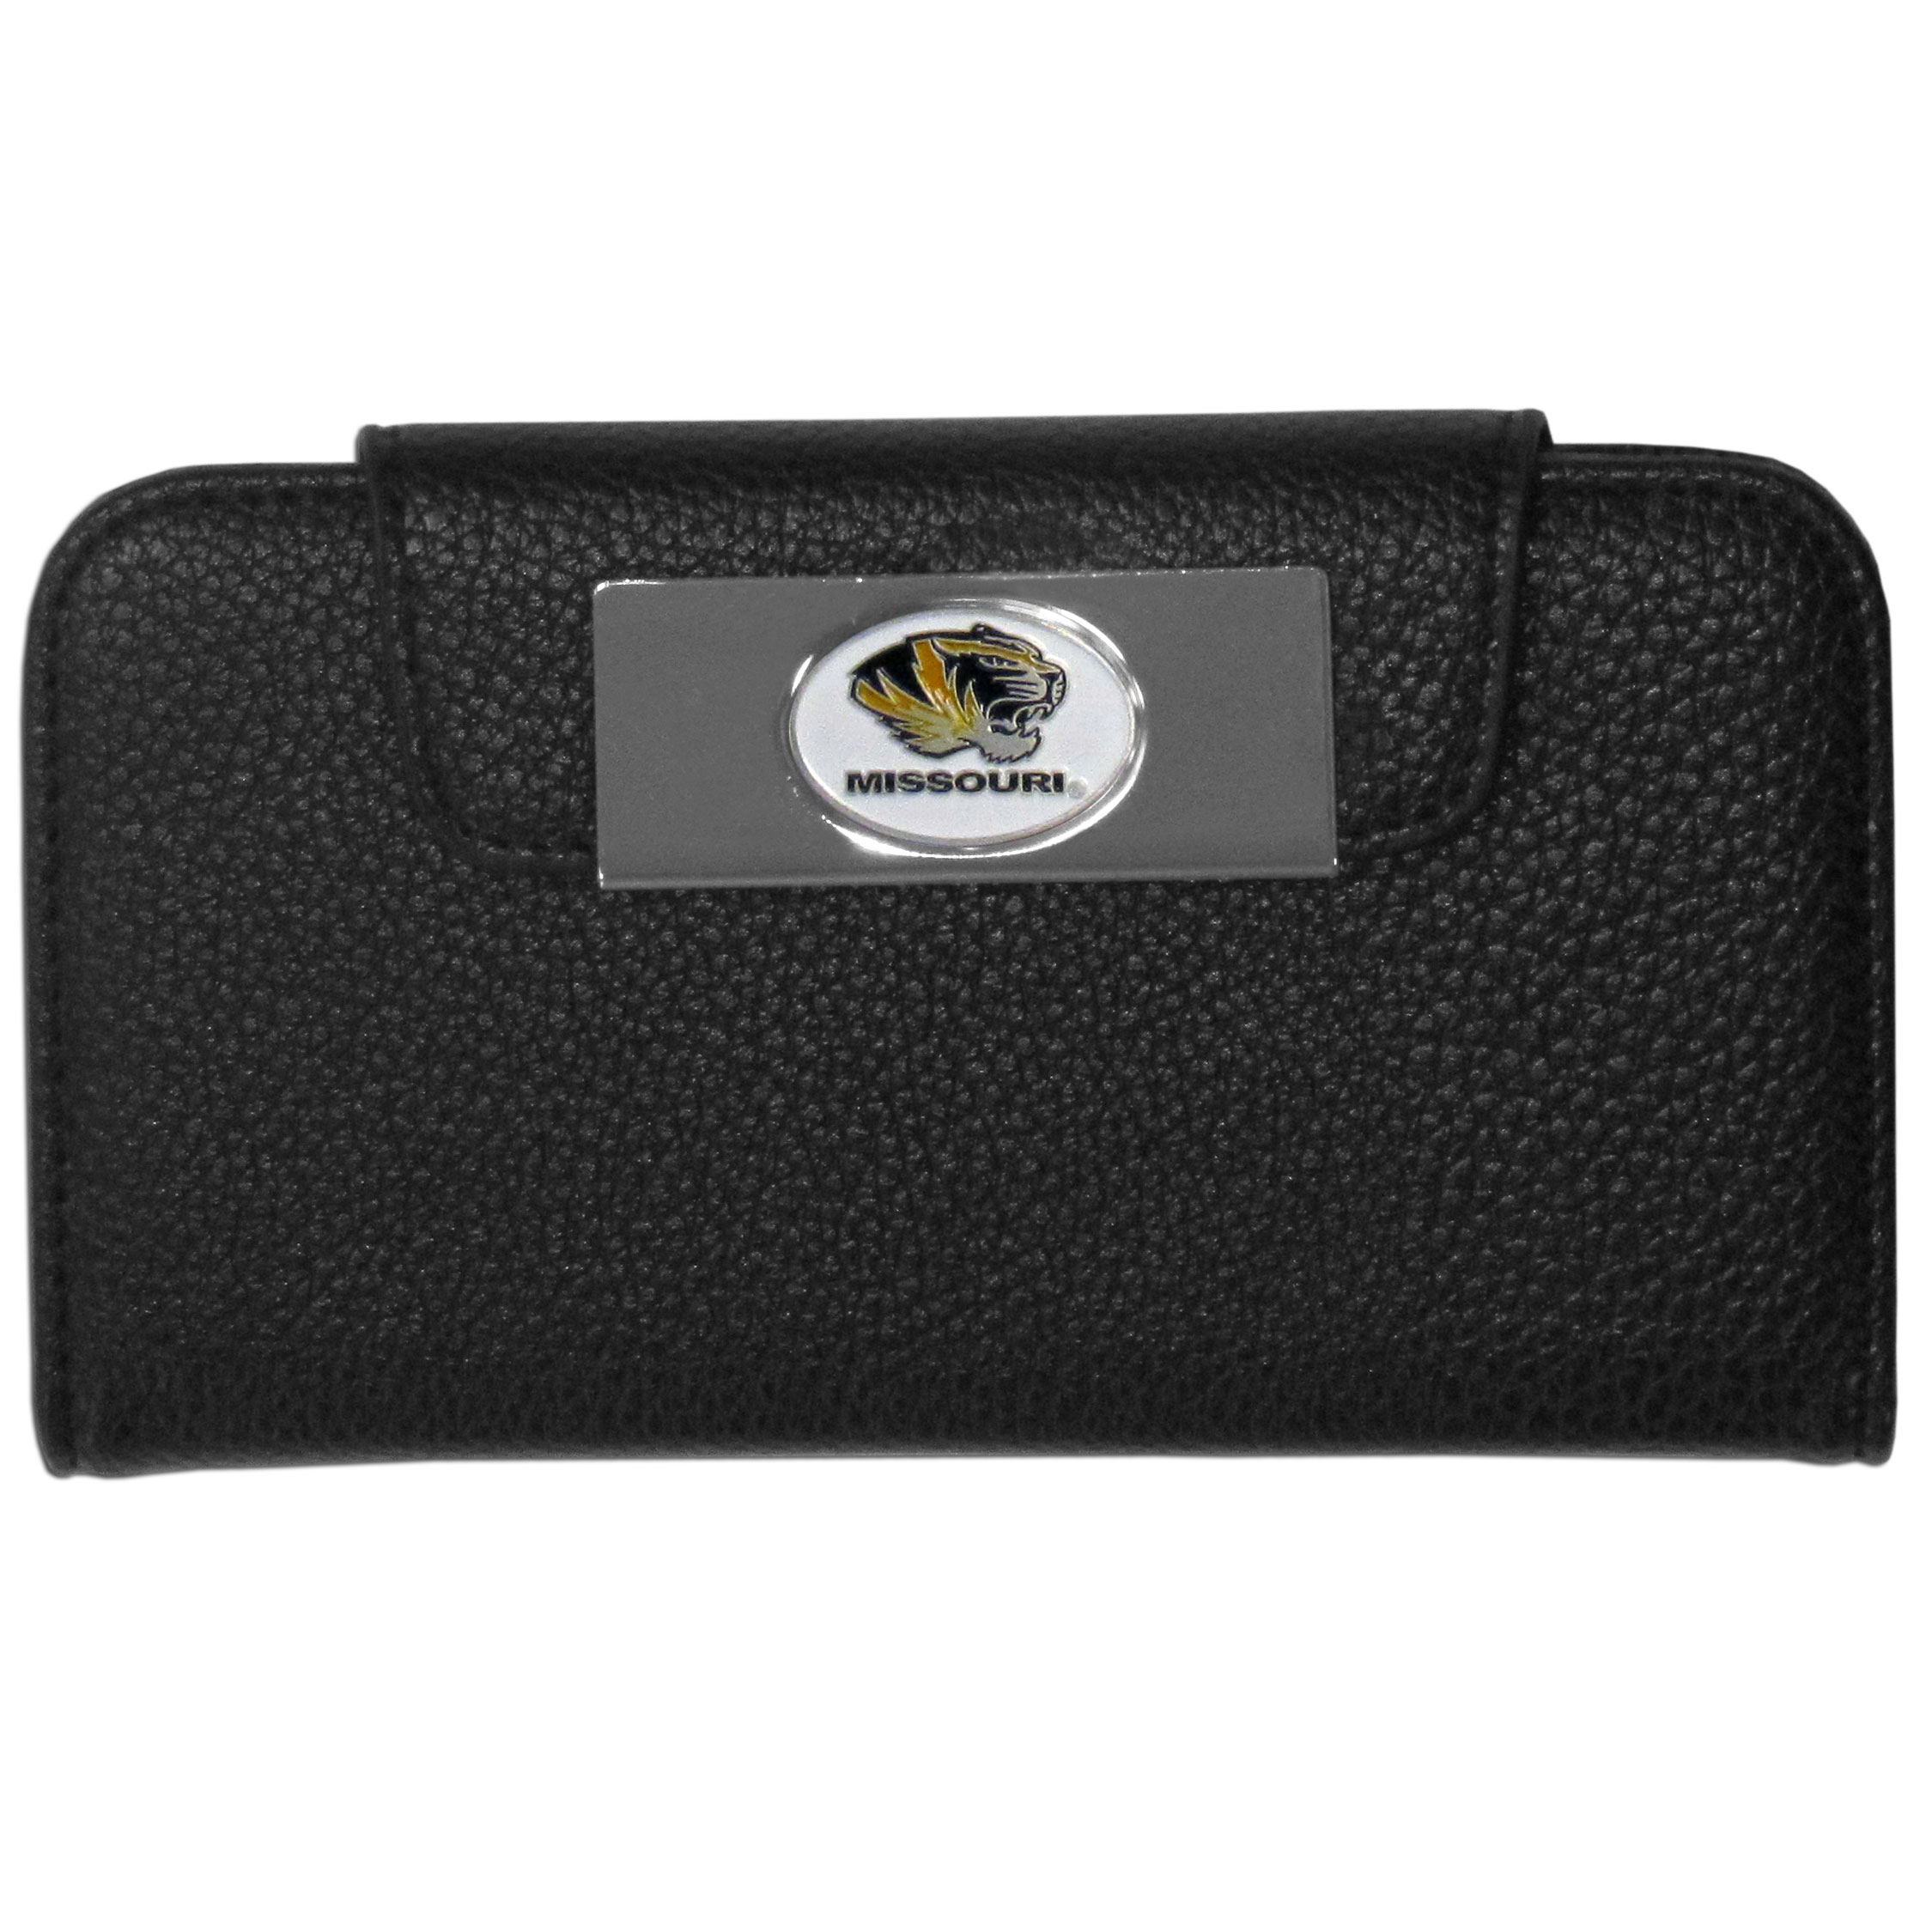 Missouri Tigers Samsung Galaxy S4 Wallet Case - This new & wildly popular case is ideal for those who like to travel light! The stylish case has an inner hard shell that securely holds your phone while allowing complete access to the phone's functionality. The flip cover has slots for credit cards, business cards and identification. The magnetic flip cover has a metal Missouri Tigers emblem on a high polish chrome backing. Fits the Samsung Galaxy S4